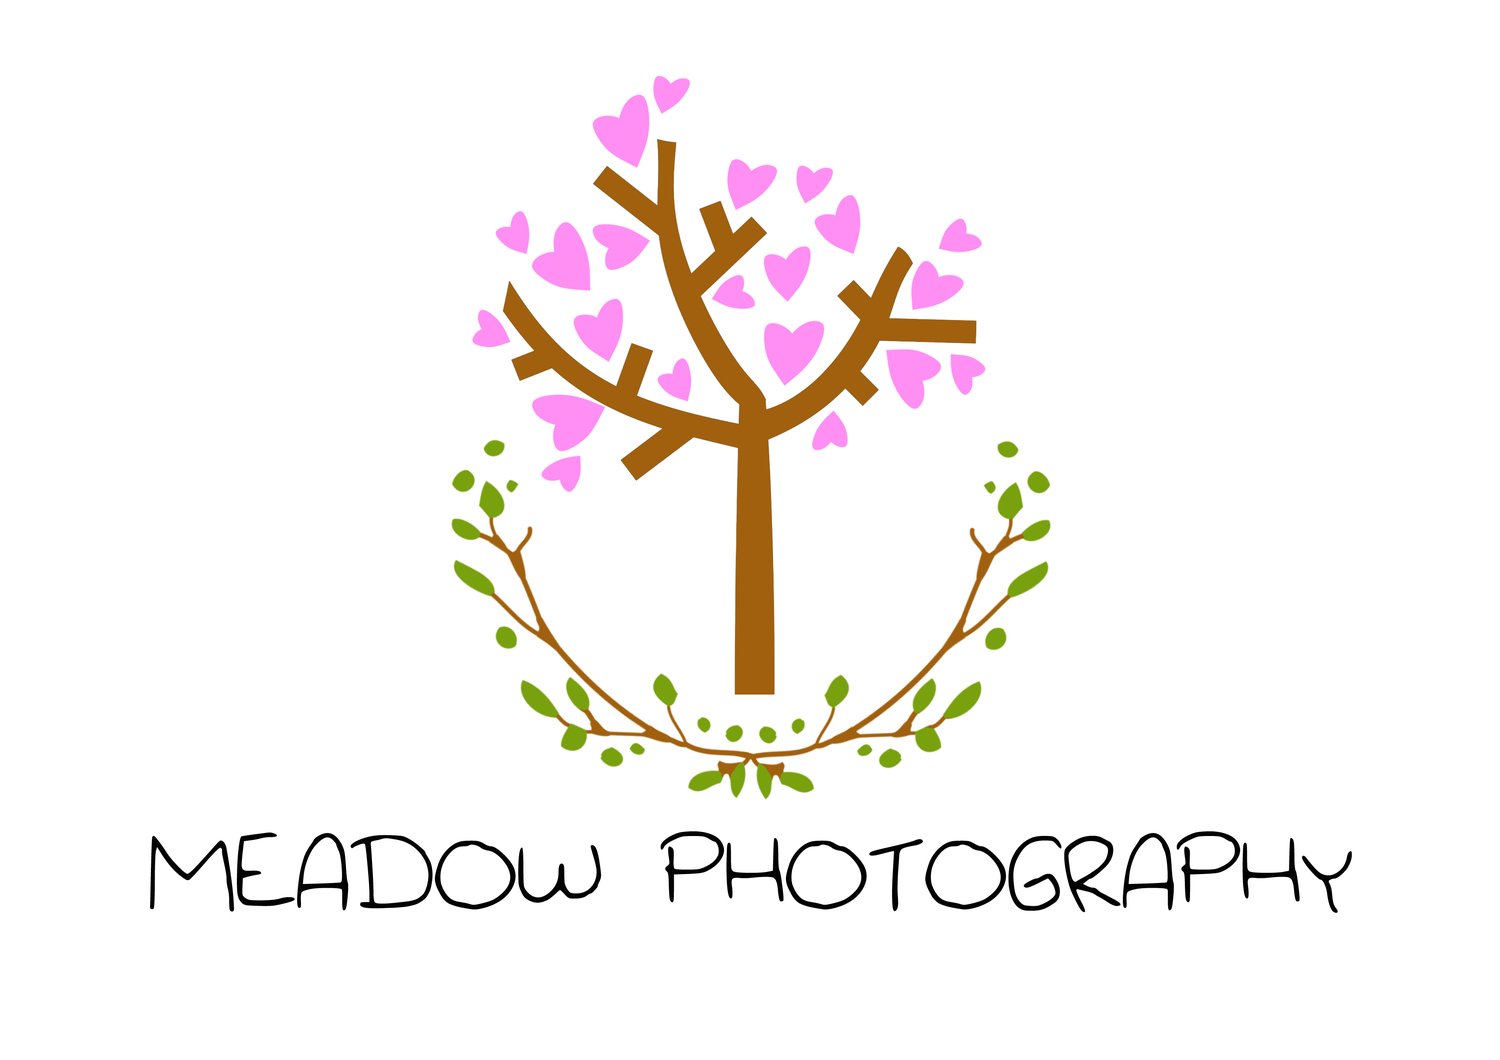 Meadow Photography